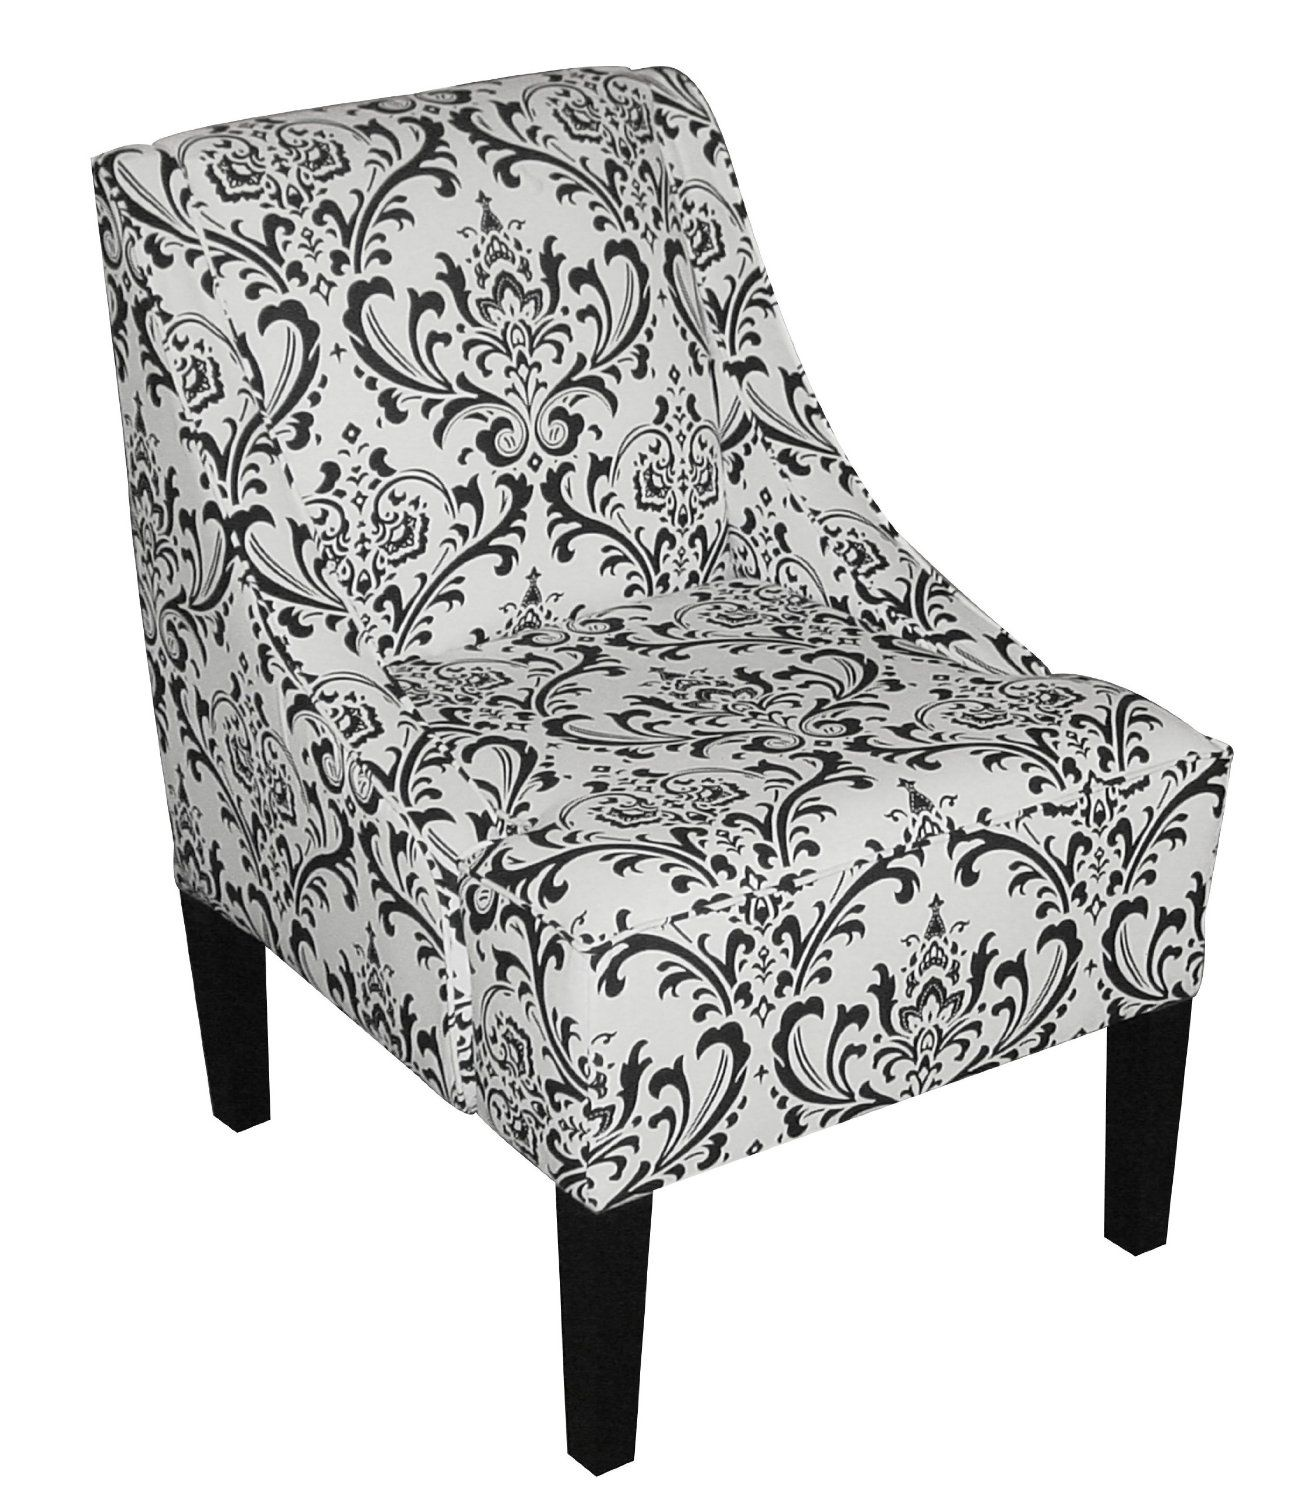 Floral black and white chair 211 Black and white